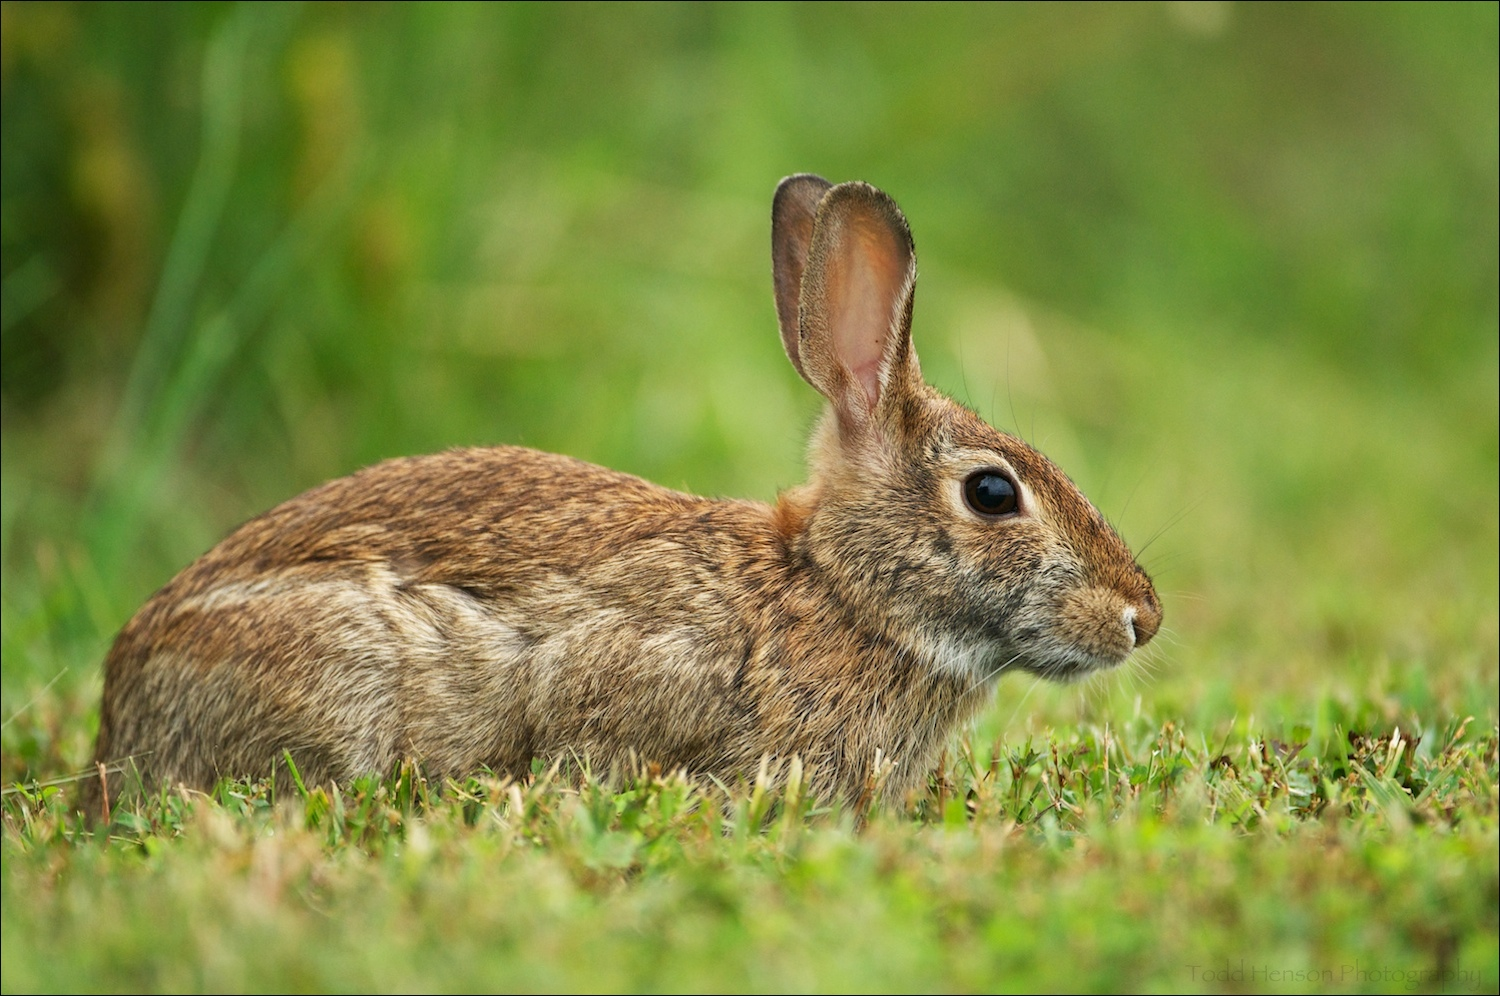 Eastern Cottontail photographed from eye level